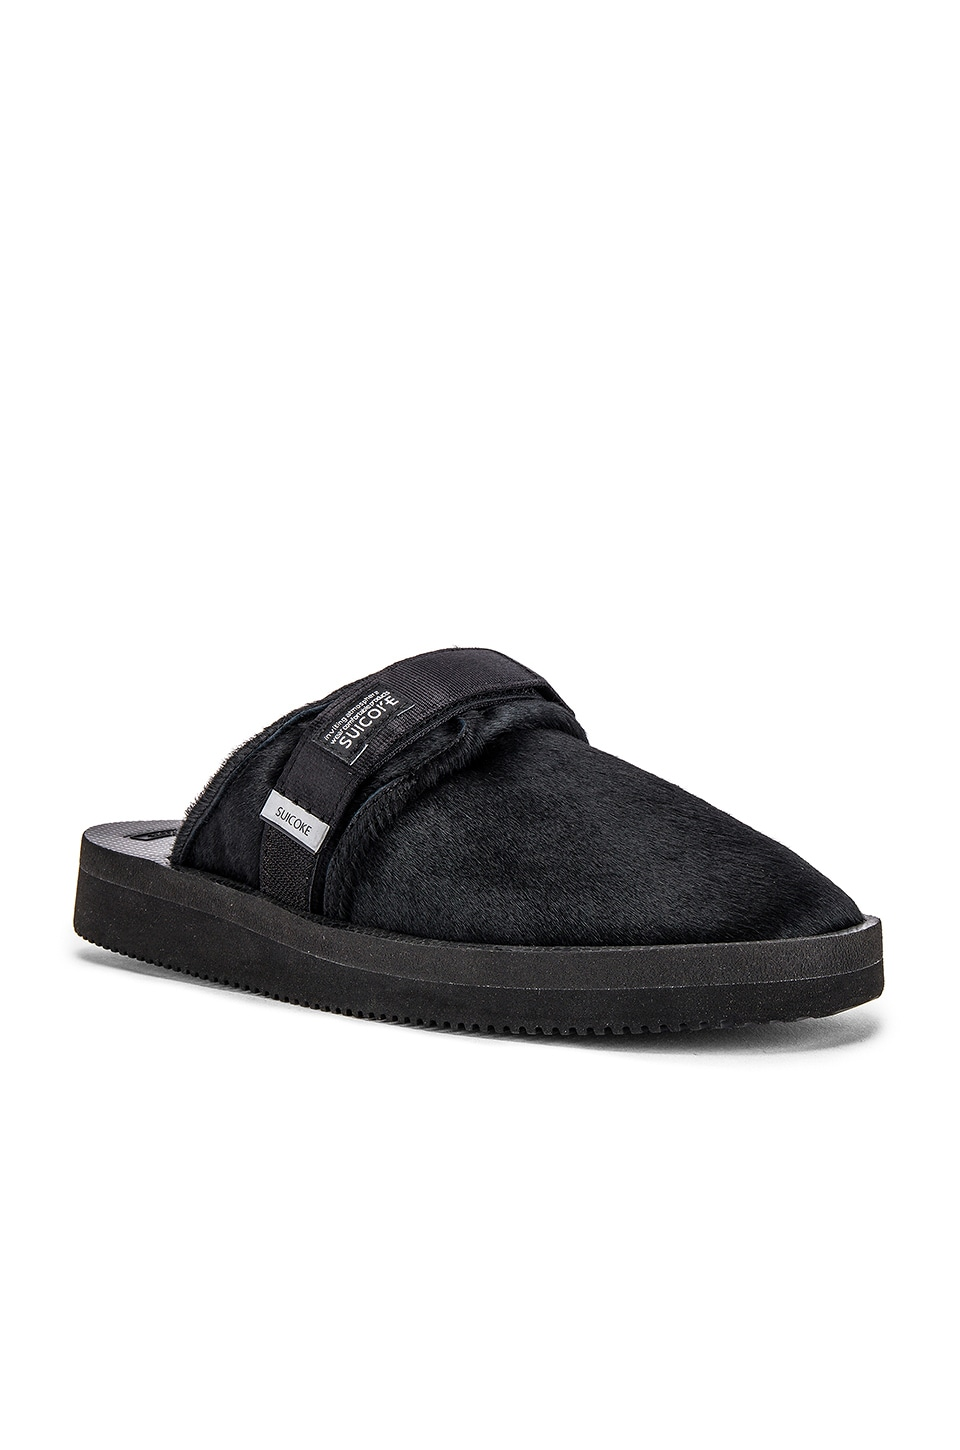 Suicoke ZAVO-vhl Slipper in Black